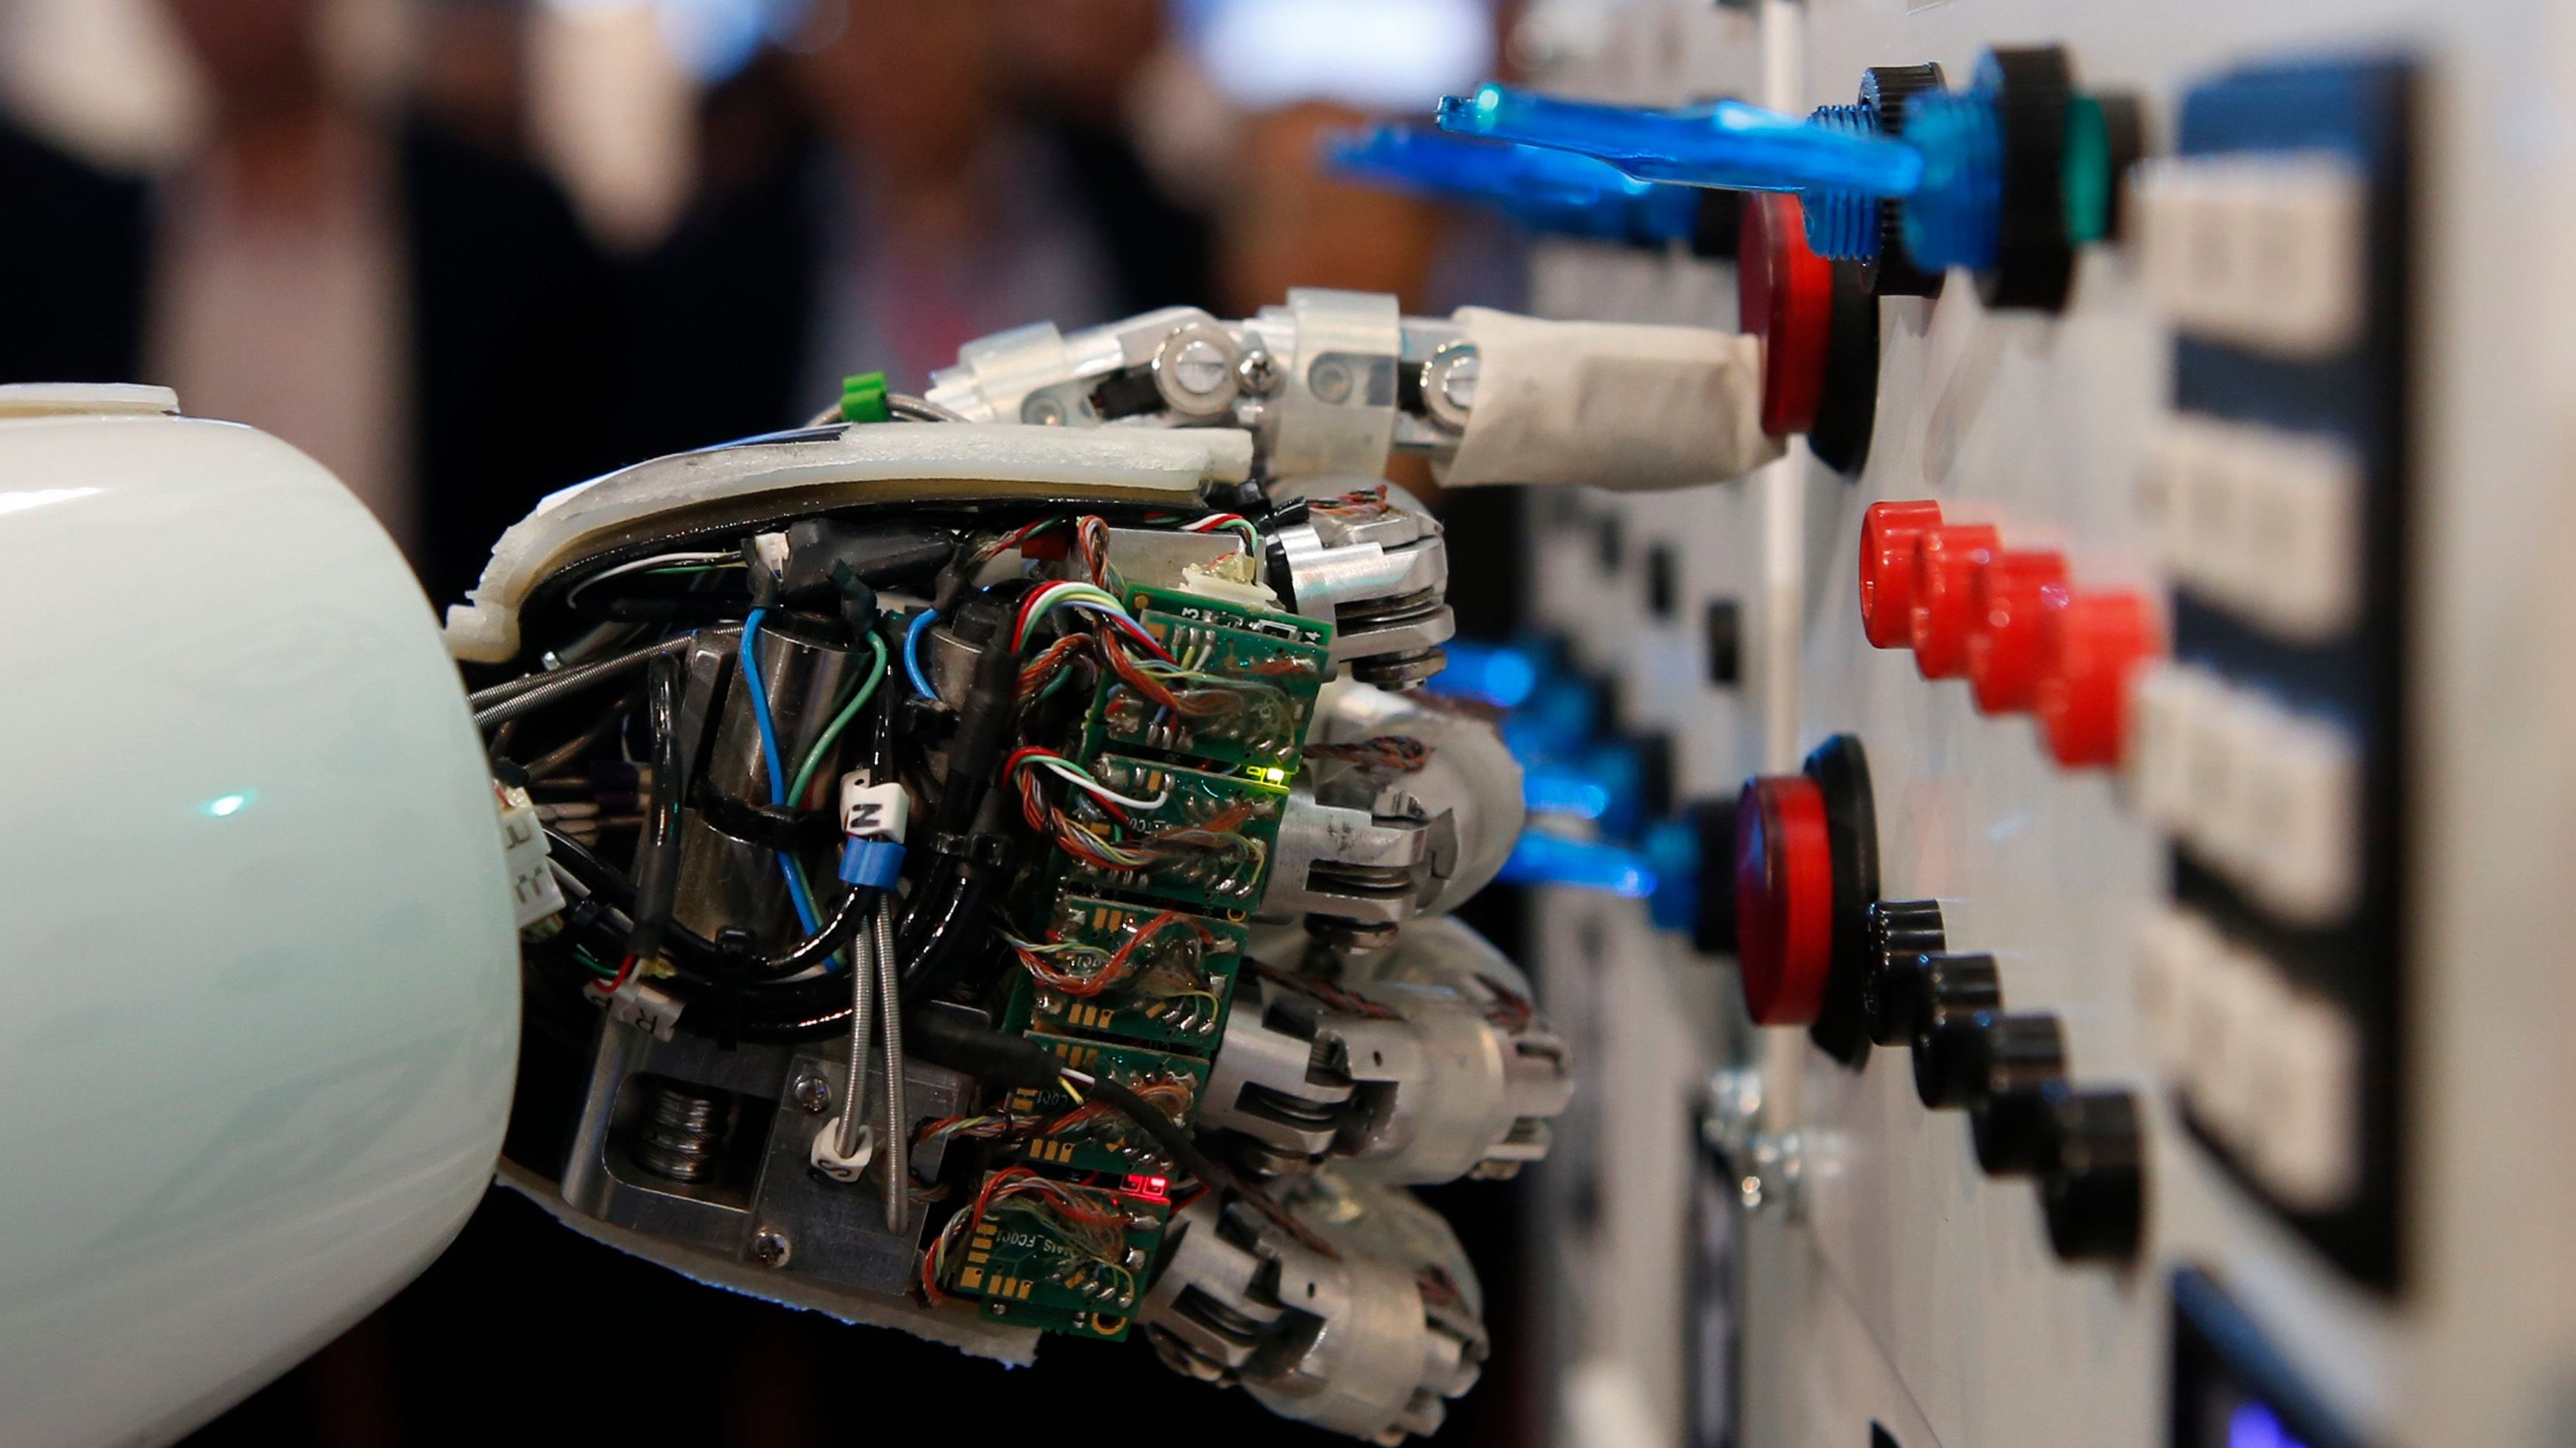 The hand of humanoid robot AILA (artificial intelligence lightweight android) operates a switchboard during a demonstration by the German research centre for artificial intelligence at the CeBit computer fair in Hanover